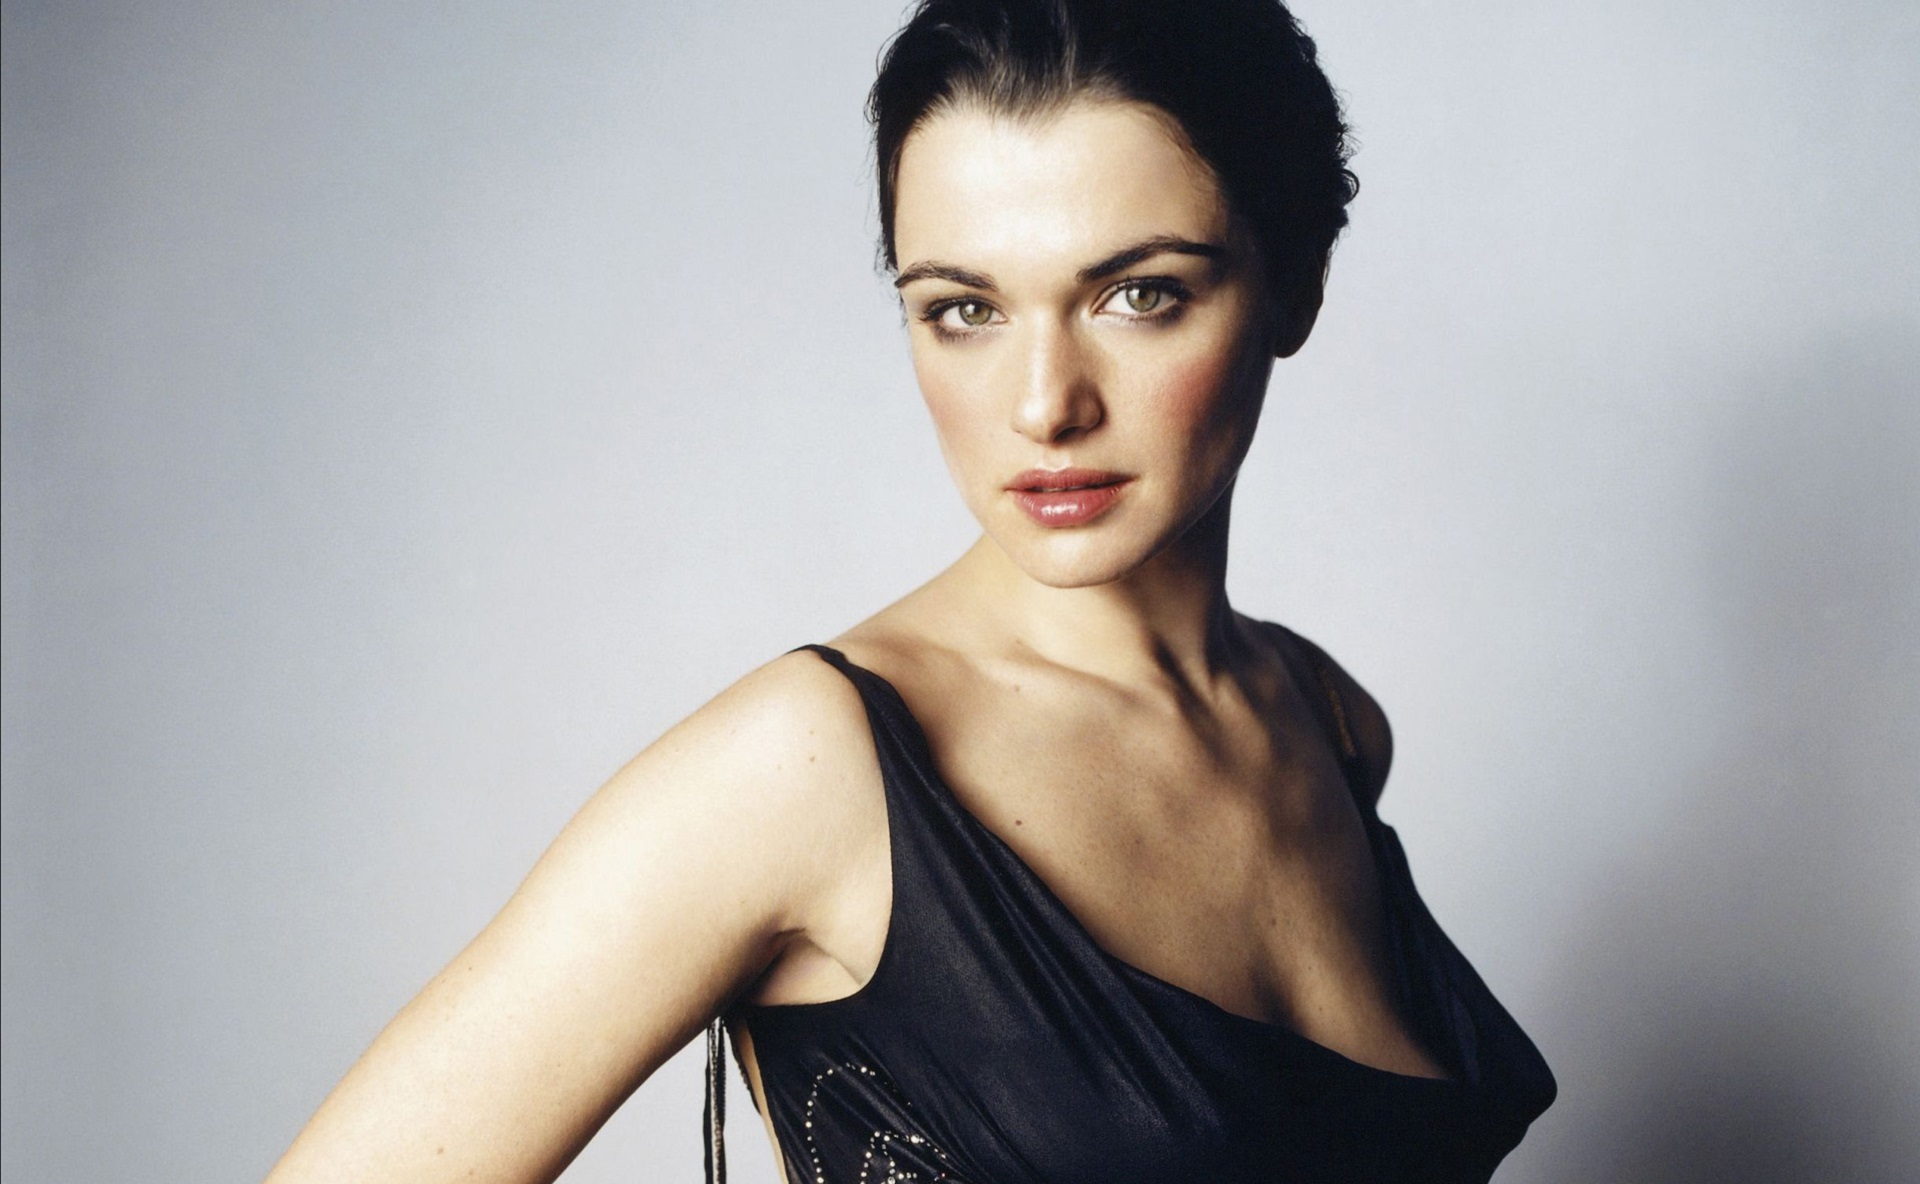 Rachel Weisz Wallpapers Images Photos Pictures Backgrounds